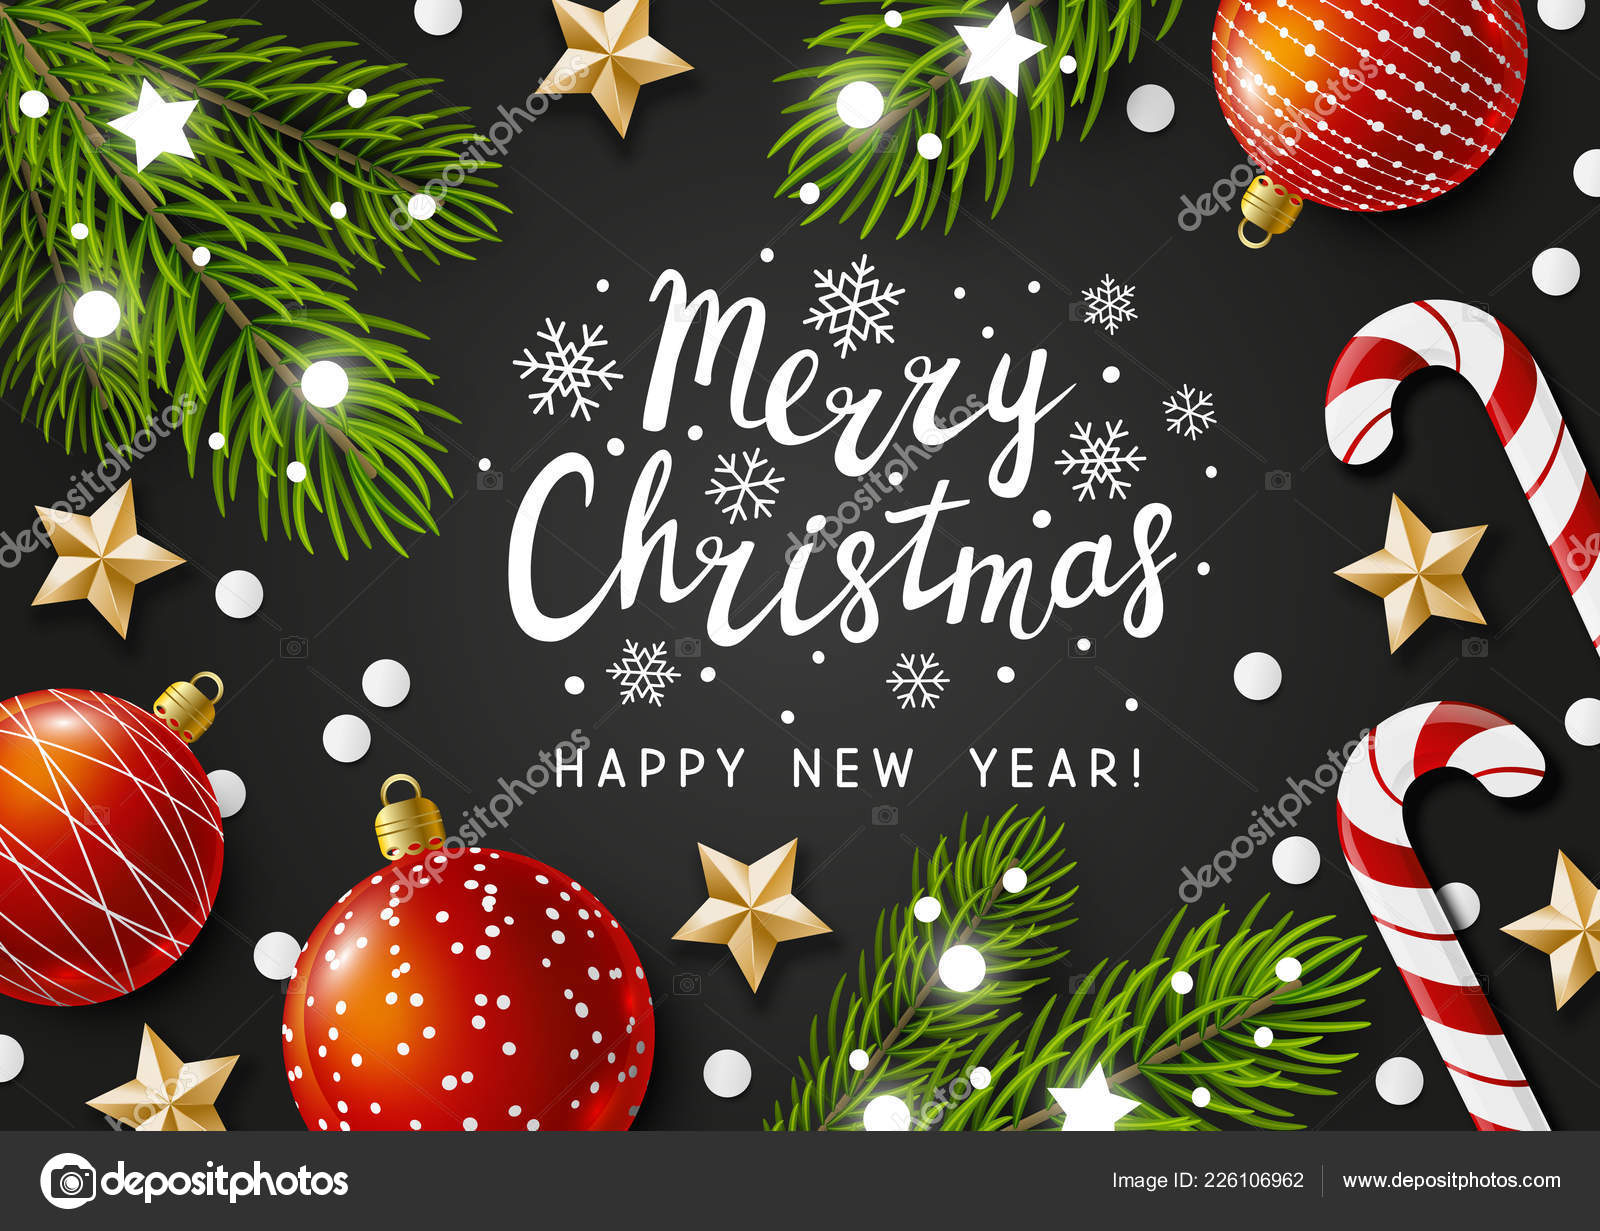 Merry Christmas And Happy New Year.Merry Christmas Happy New Year Greeting Card Holiday